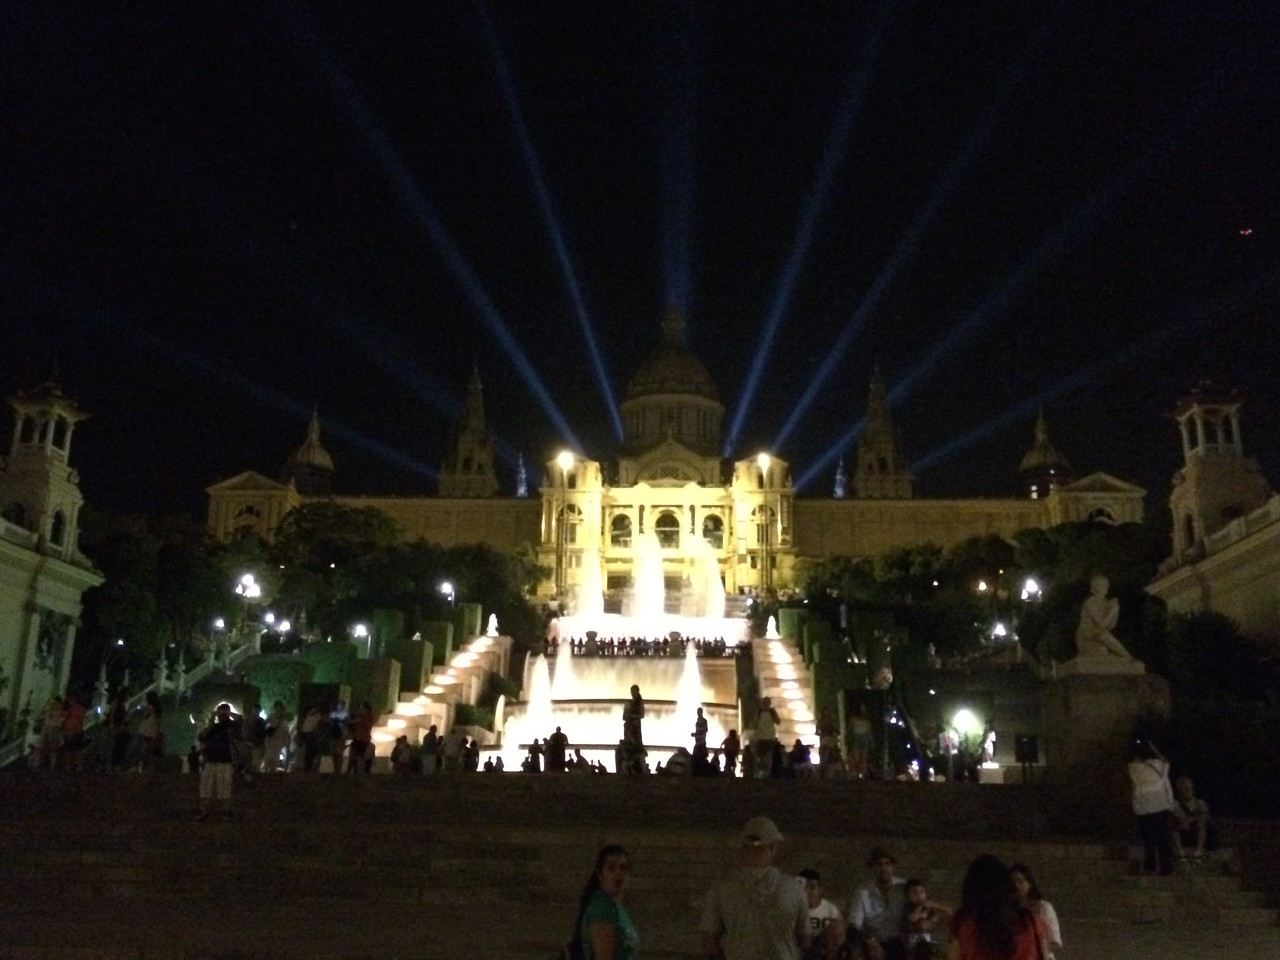 The Nacional Palau on the hill. Impressive with the fountains. The Palau houses the Museu Nacional d'Art de Catalunya. We will have to visit the museum next time.